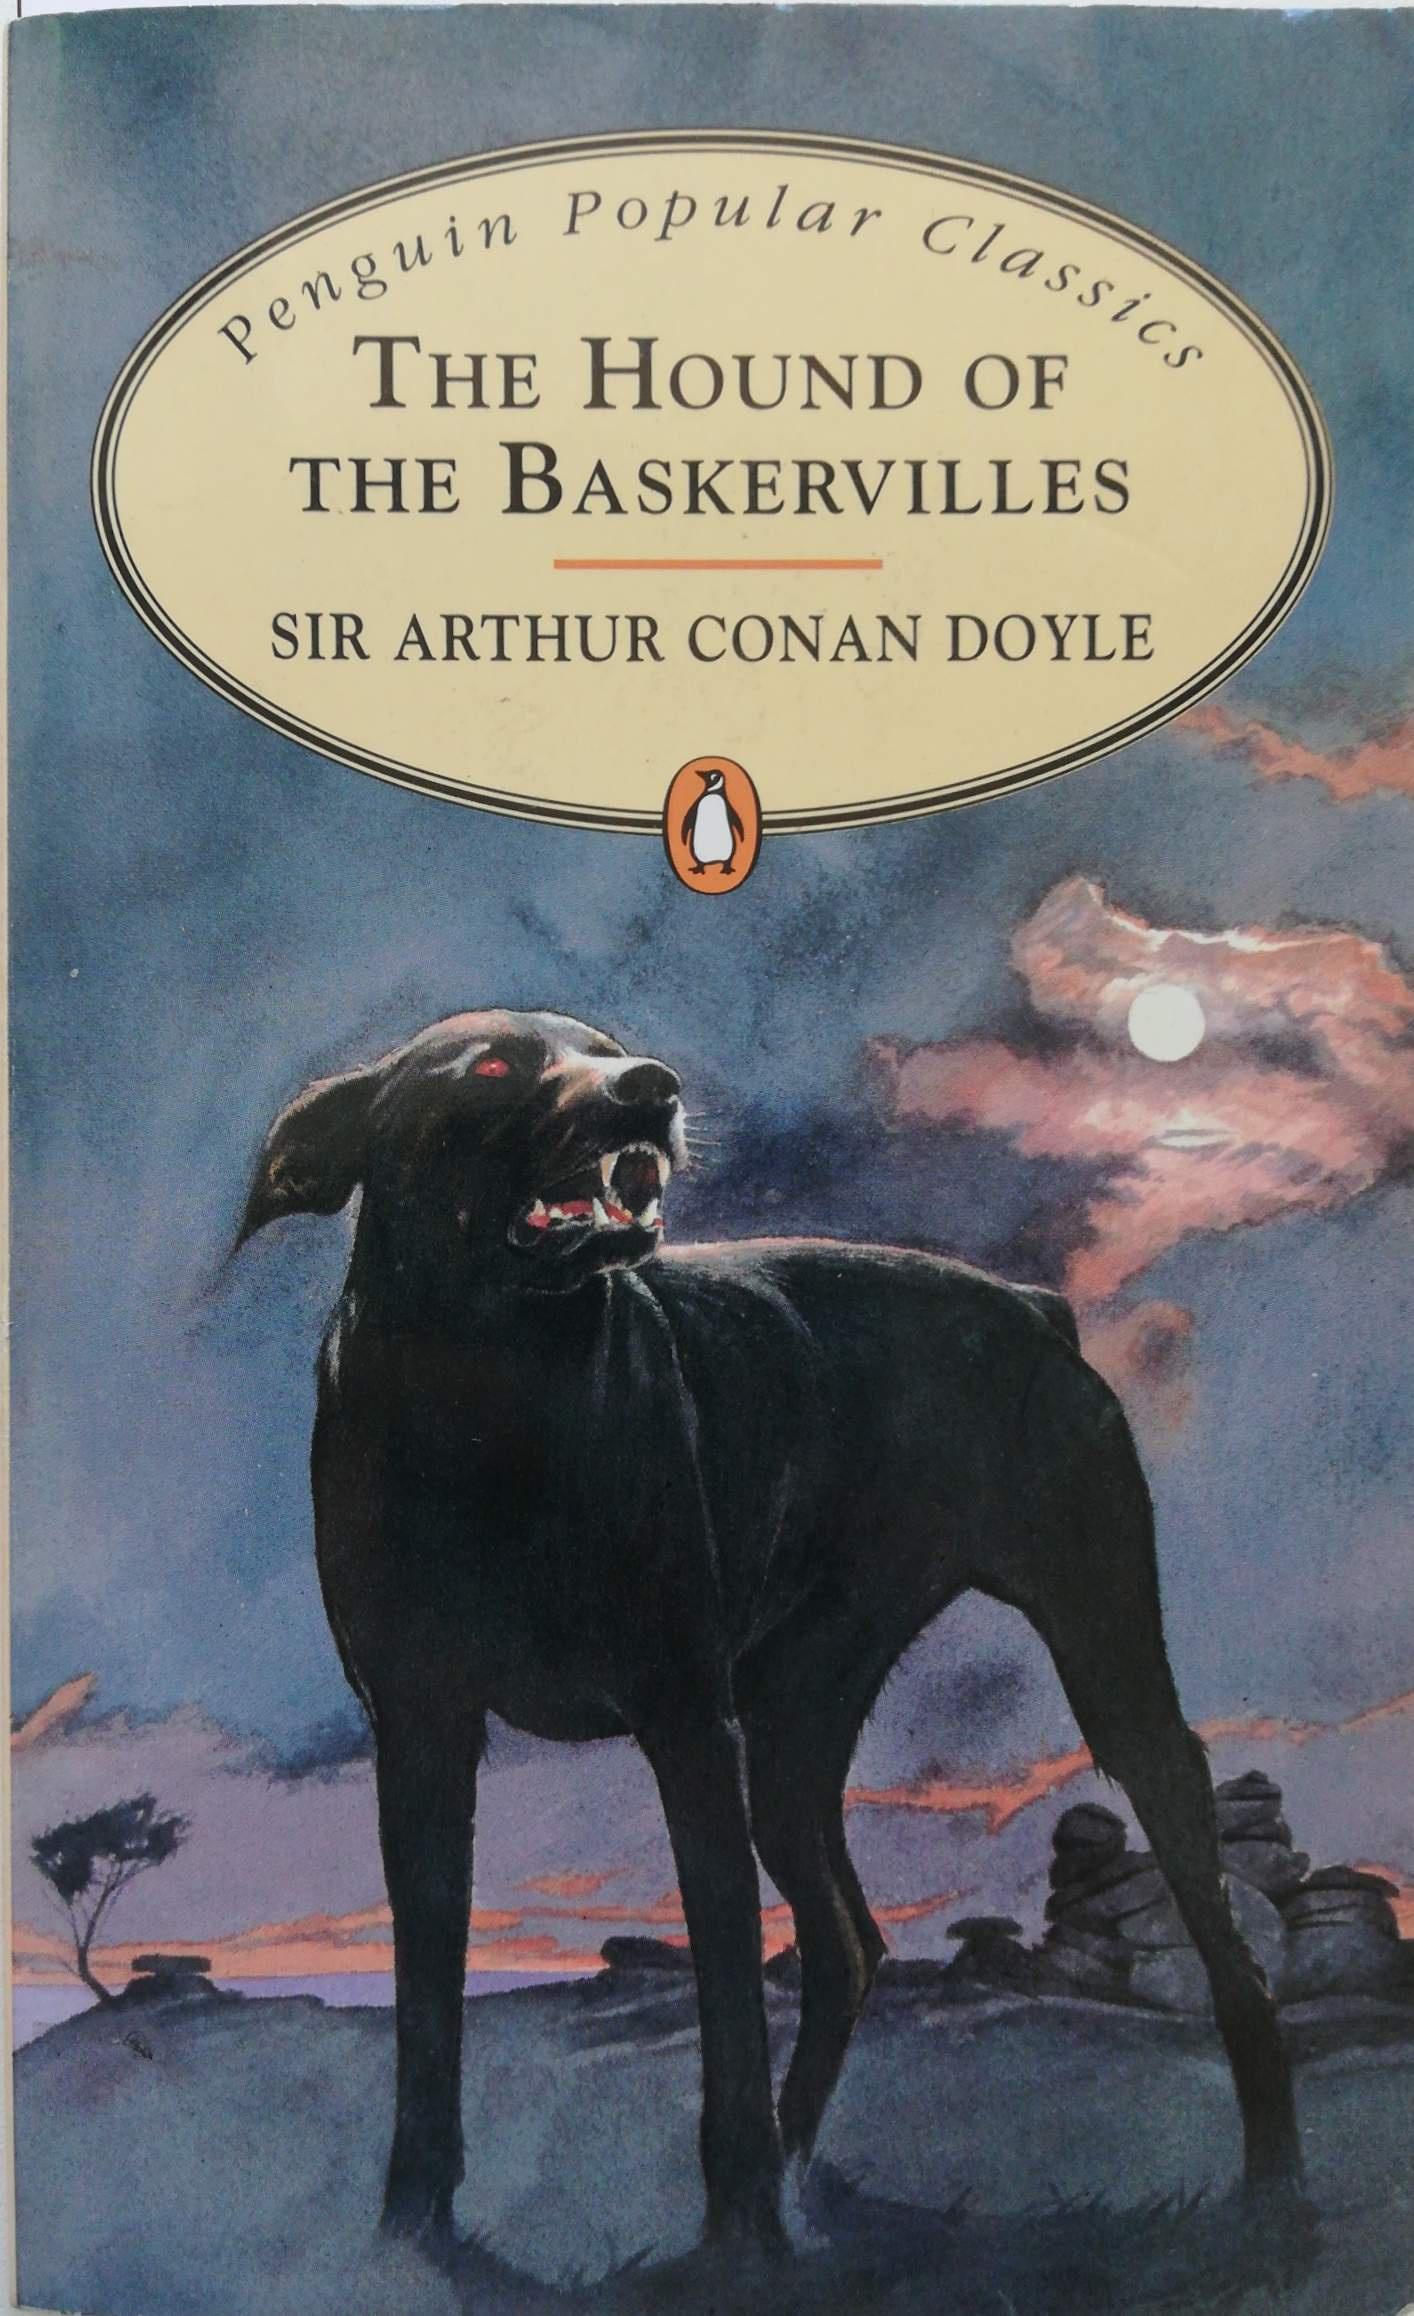 Arthur Conan Doyle The Hound of the Baskervilles arthur conan doyle the hound of the baskervilles another adventure of sherlock holmes